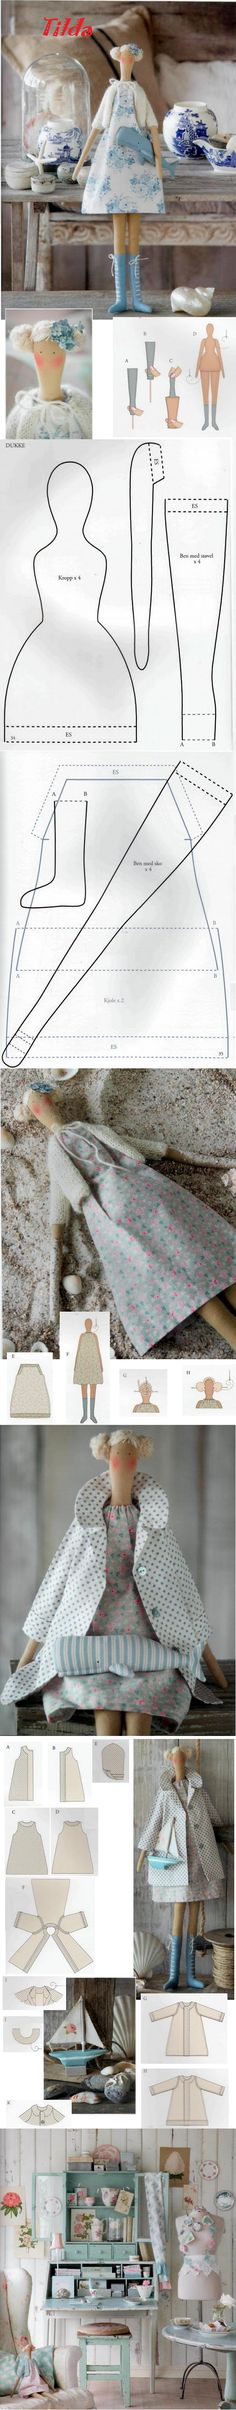 Tillda rag doll pattern for body  clothing (from Tilda Somerliv Magazine)